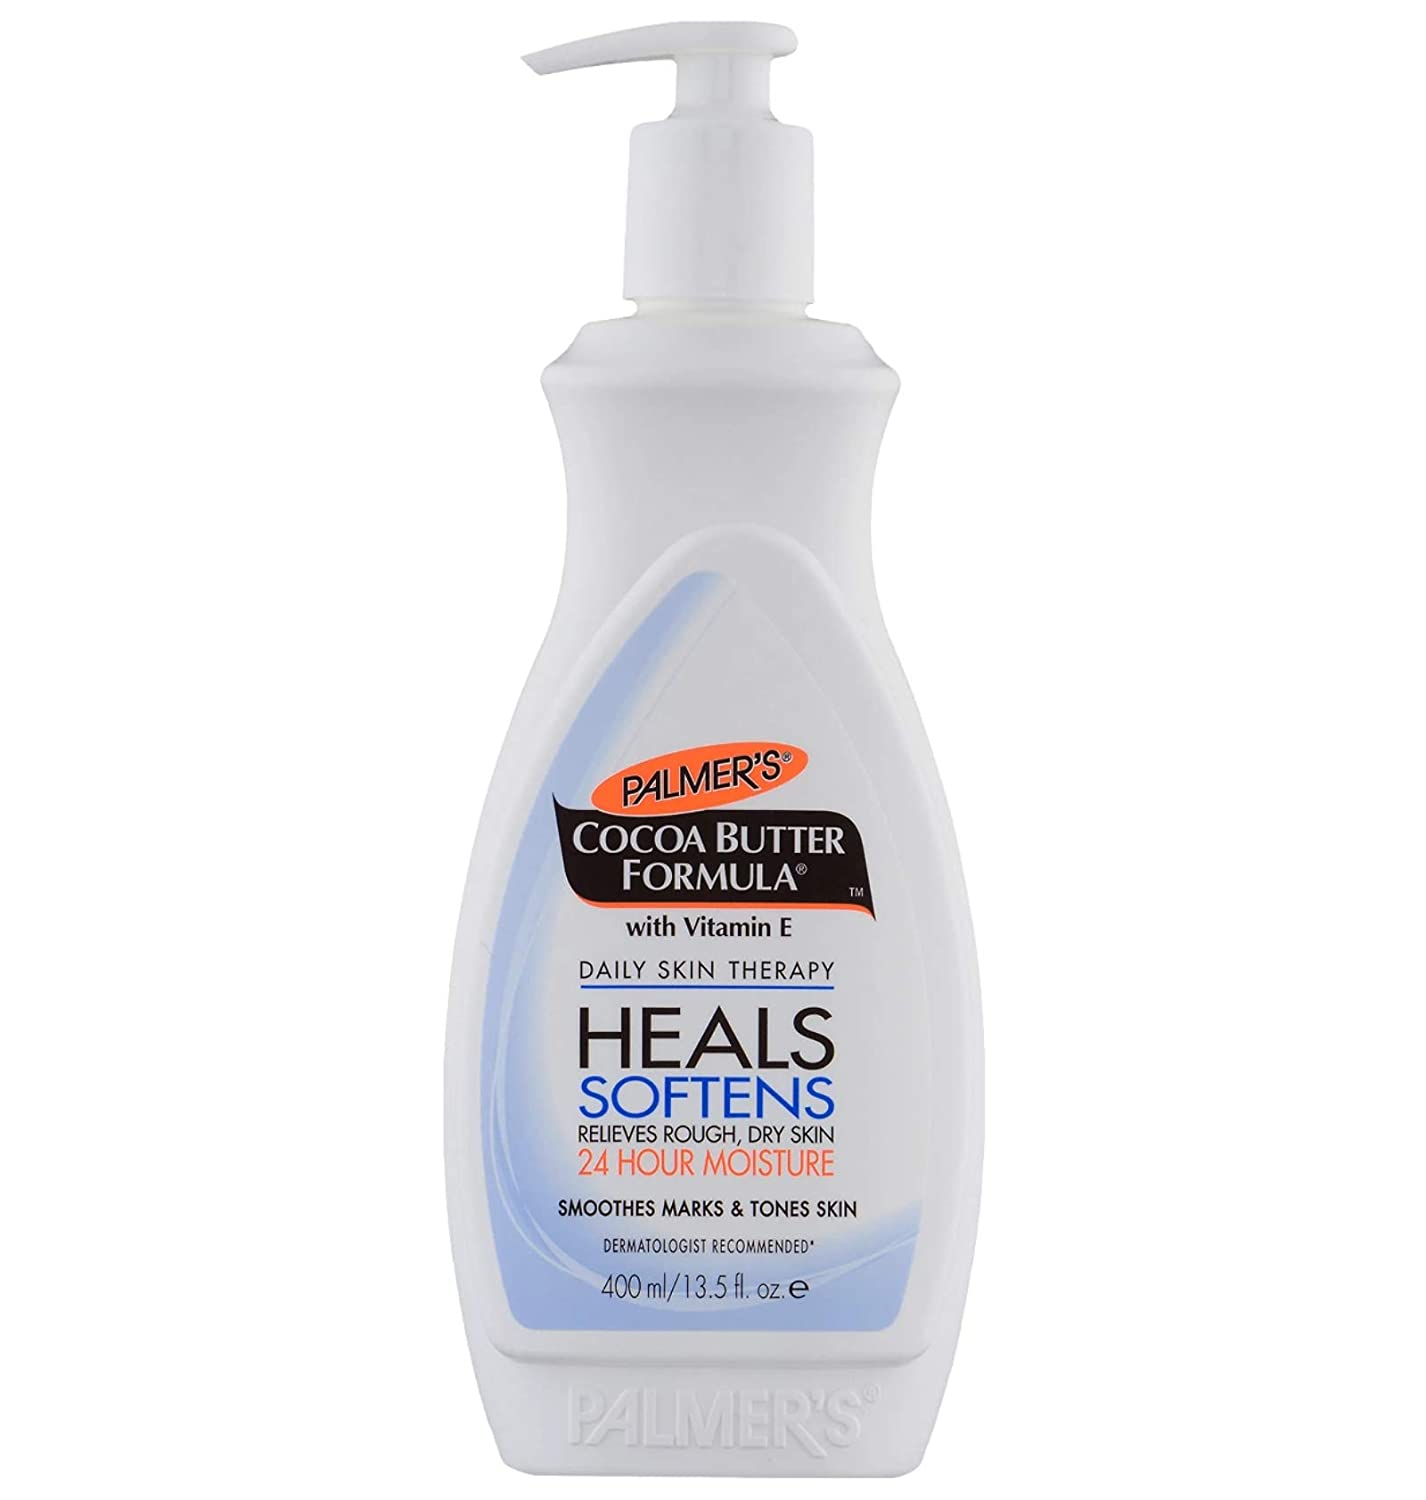 Palmer's Cocoa Butter Formula Daily Skin Therapy Body Lotion with Vitamin E